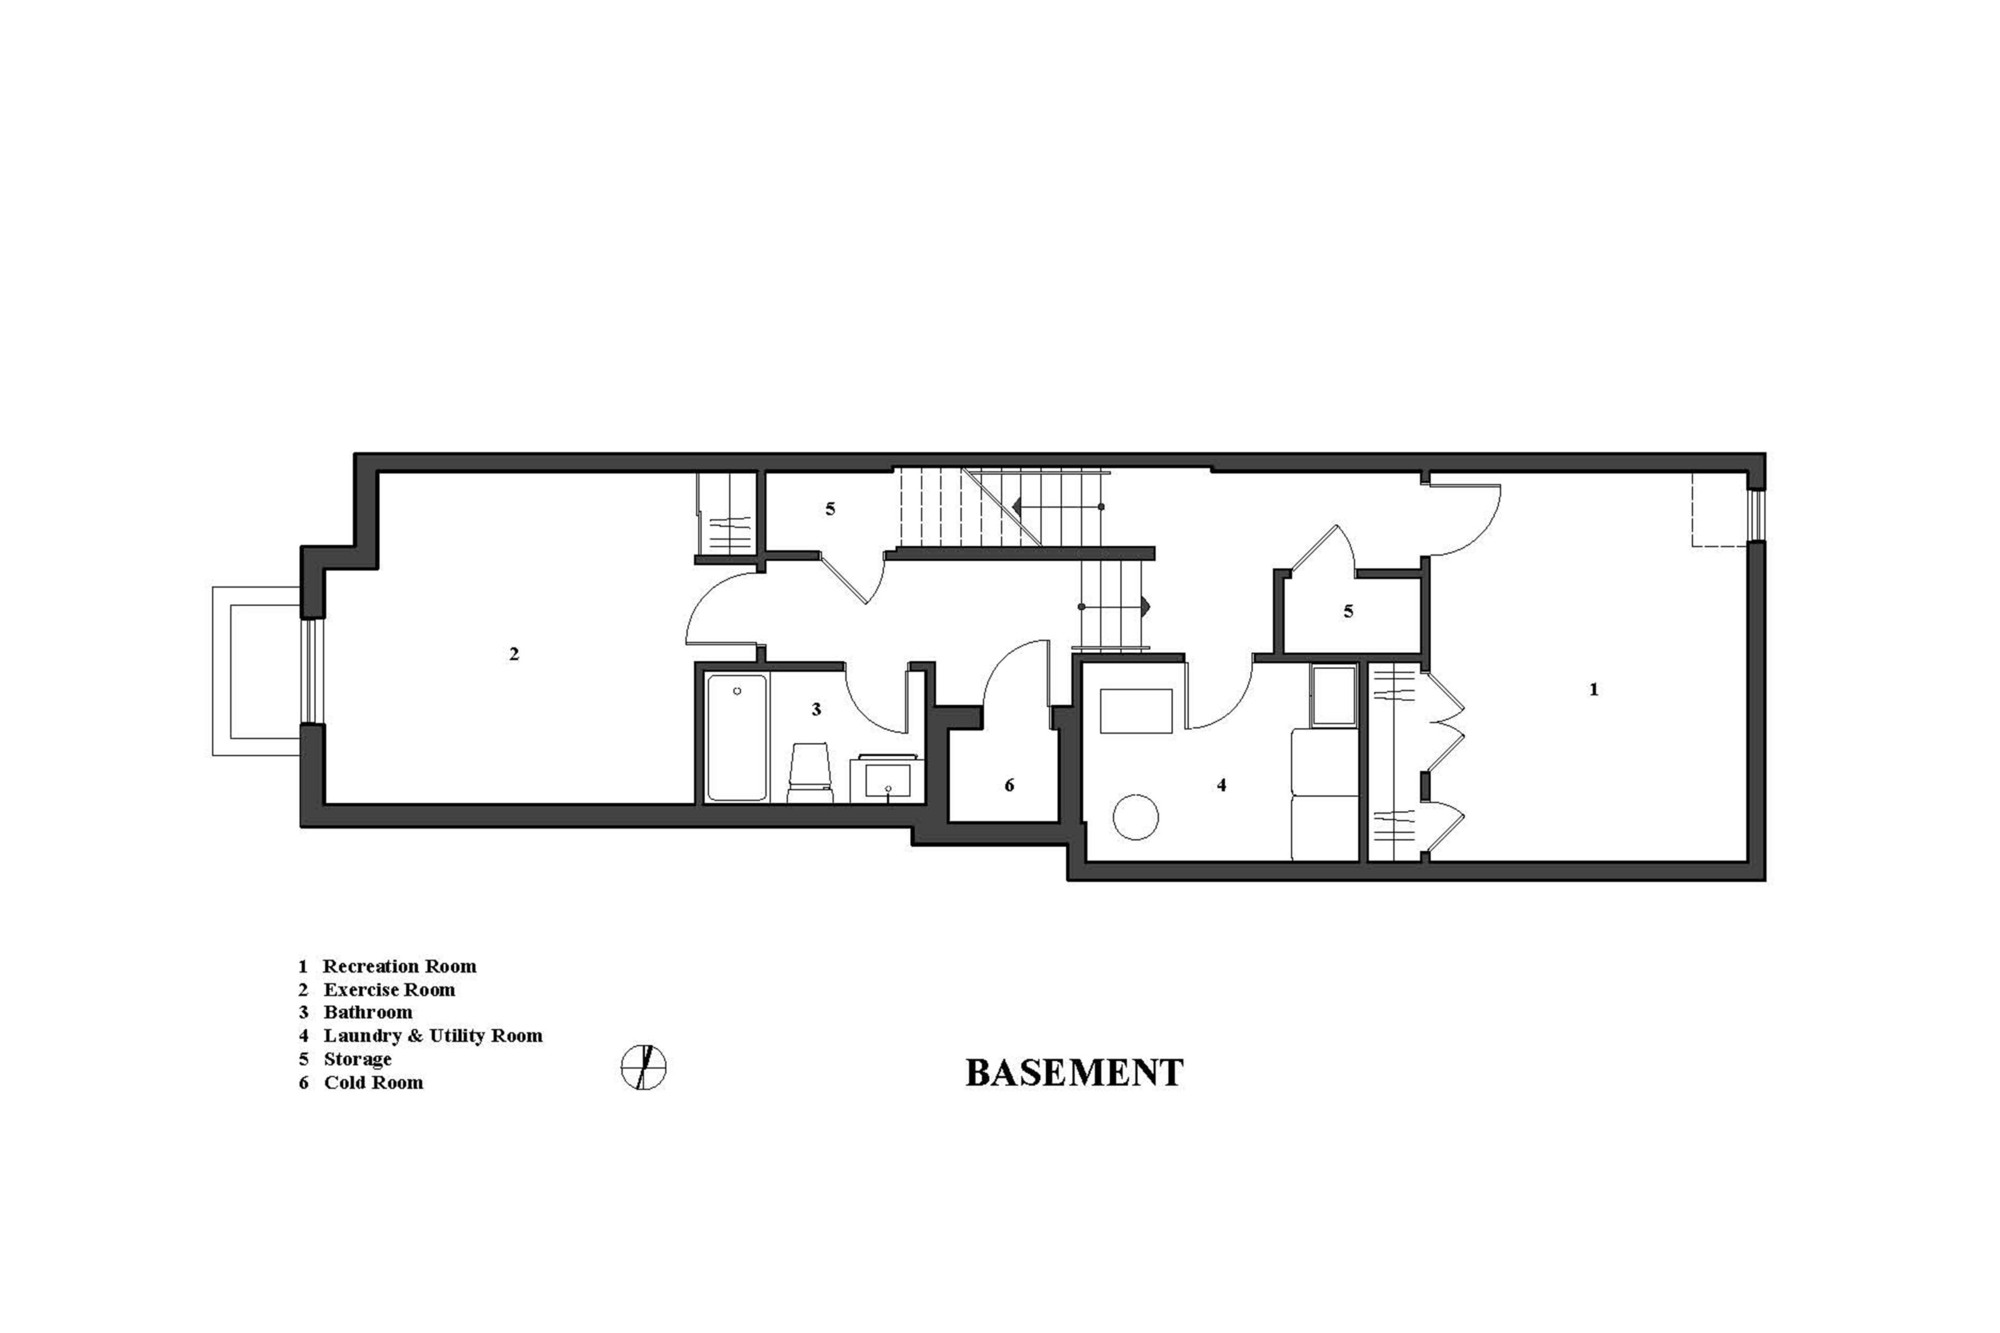 white house floor1 green roomjpg. The Linear House,Floor Plan White House Floor1 Green Roomjpg A